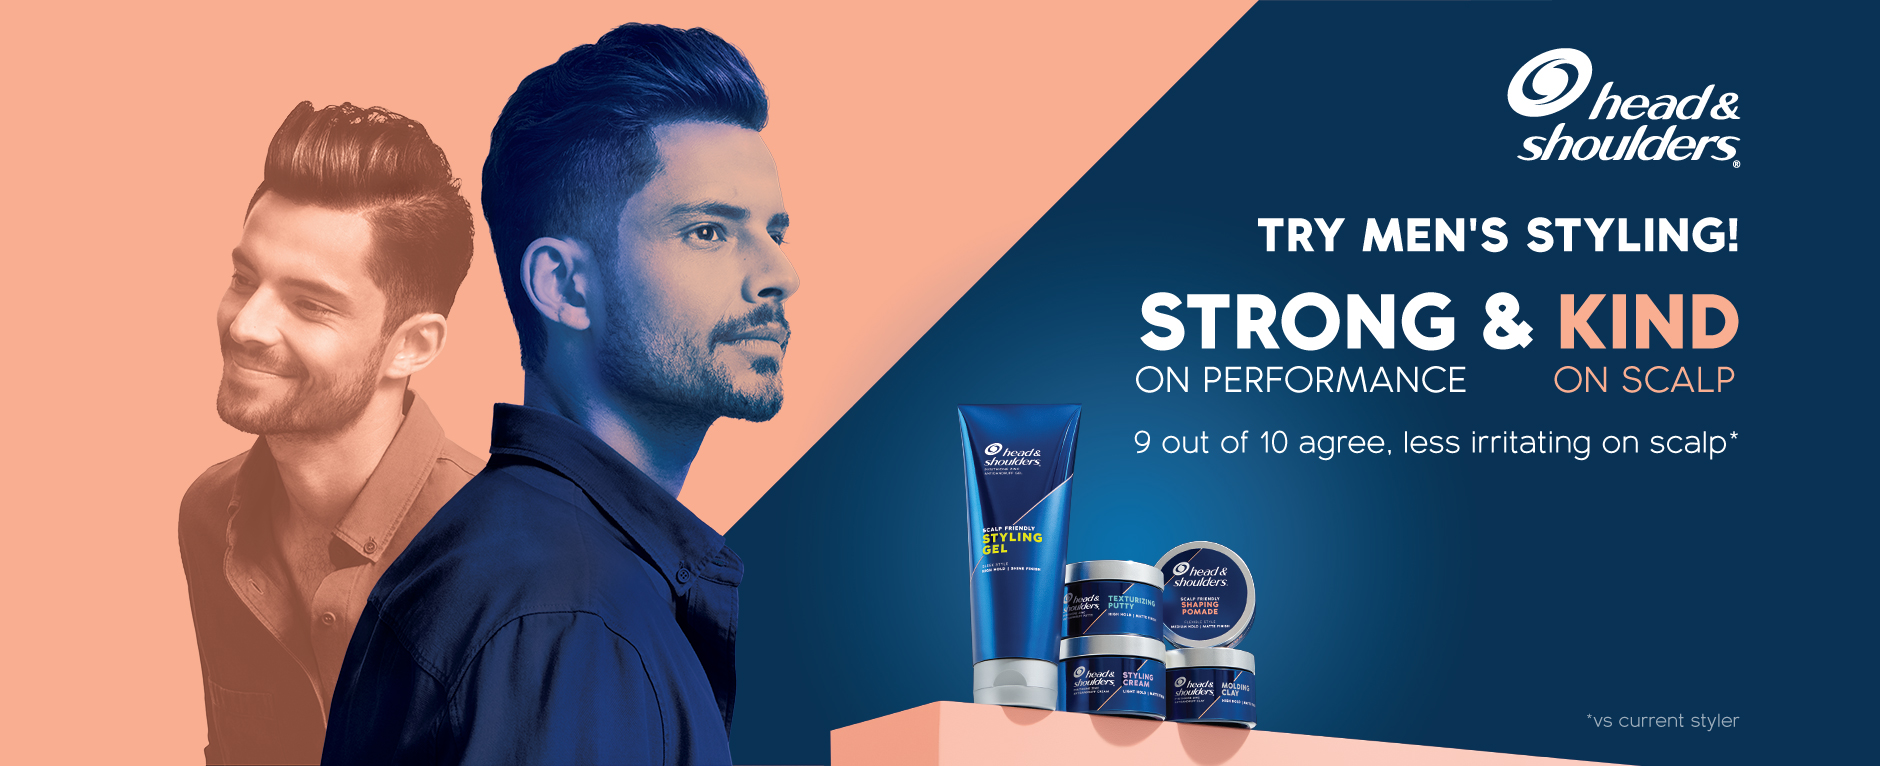 Try New Men's Styling! Strong & Kind